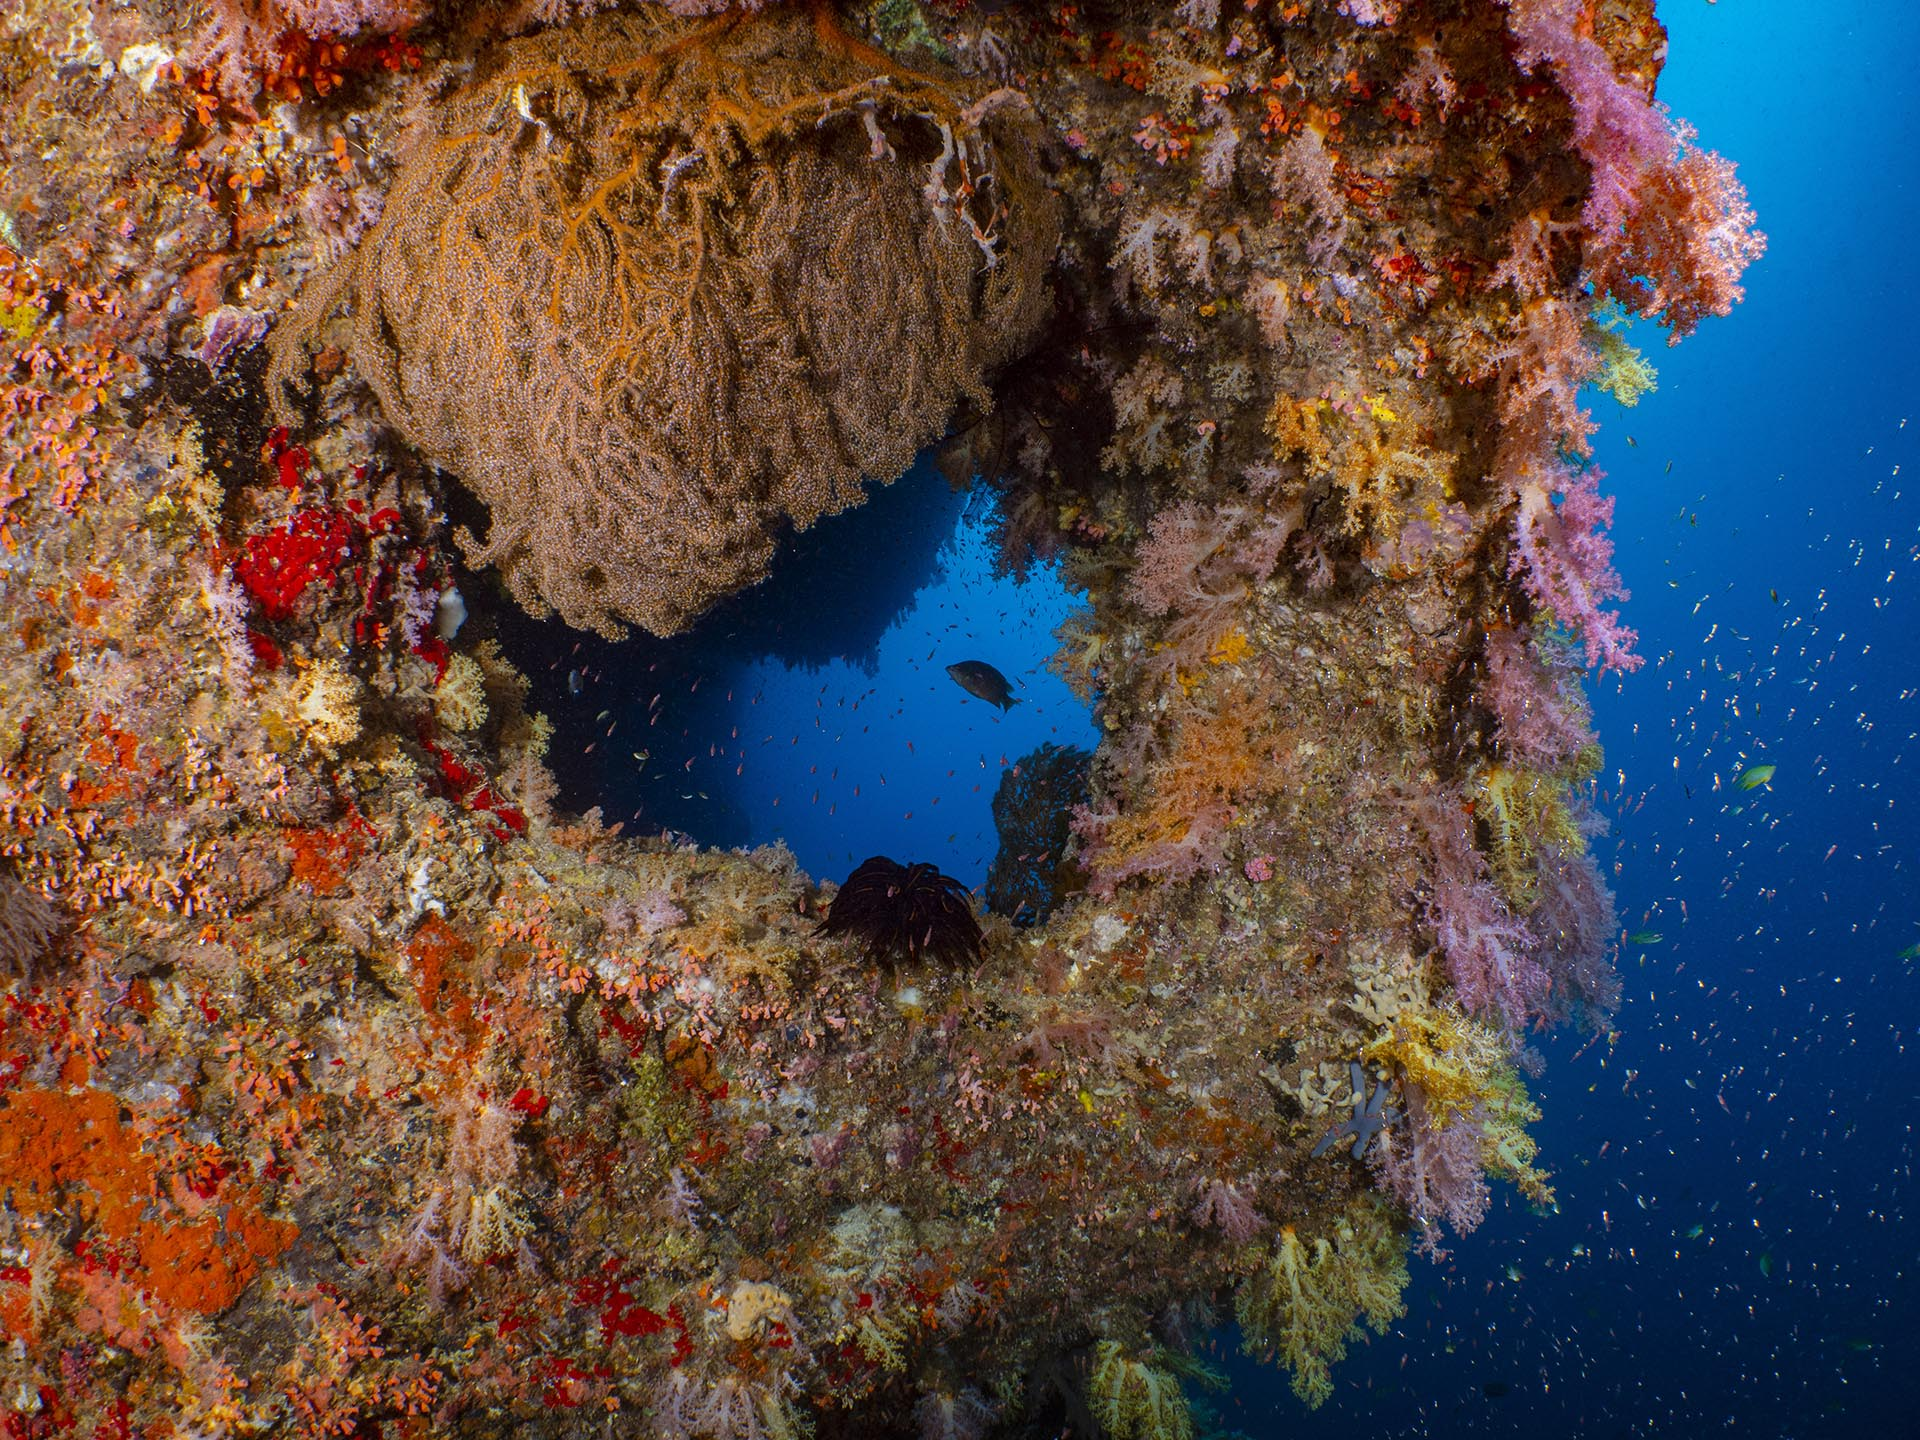 soft coral covering underwater arch